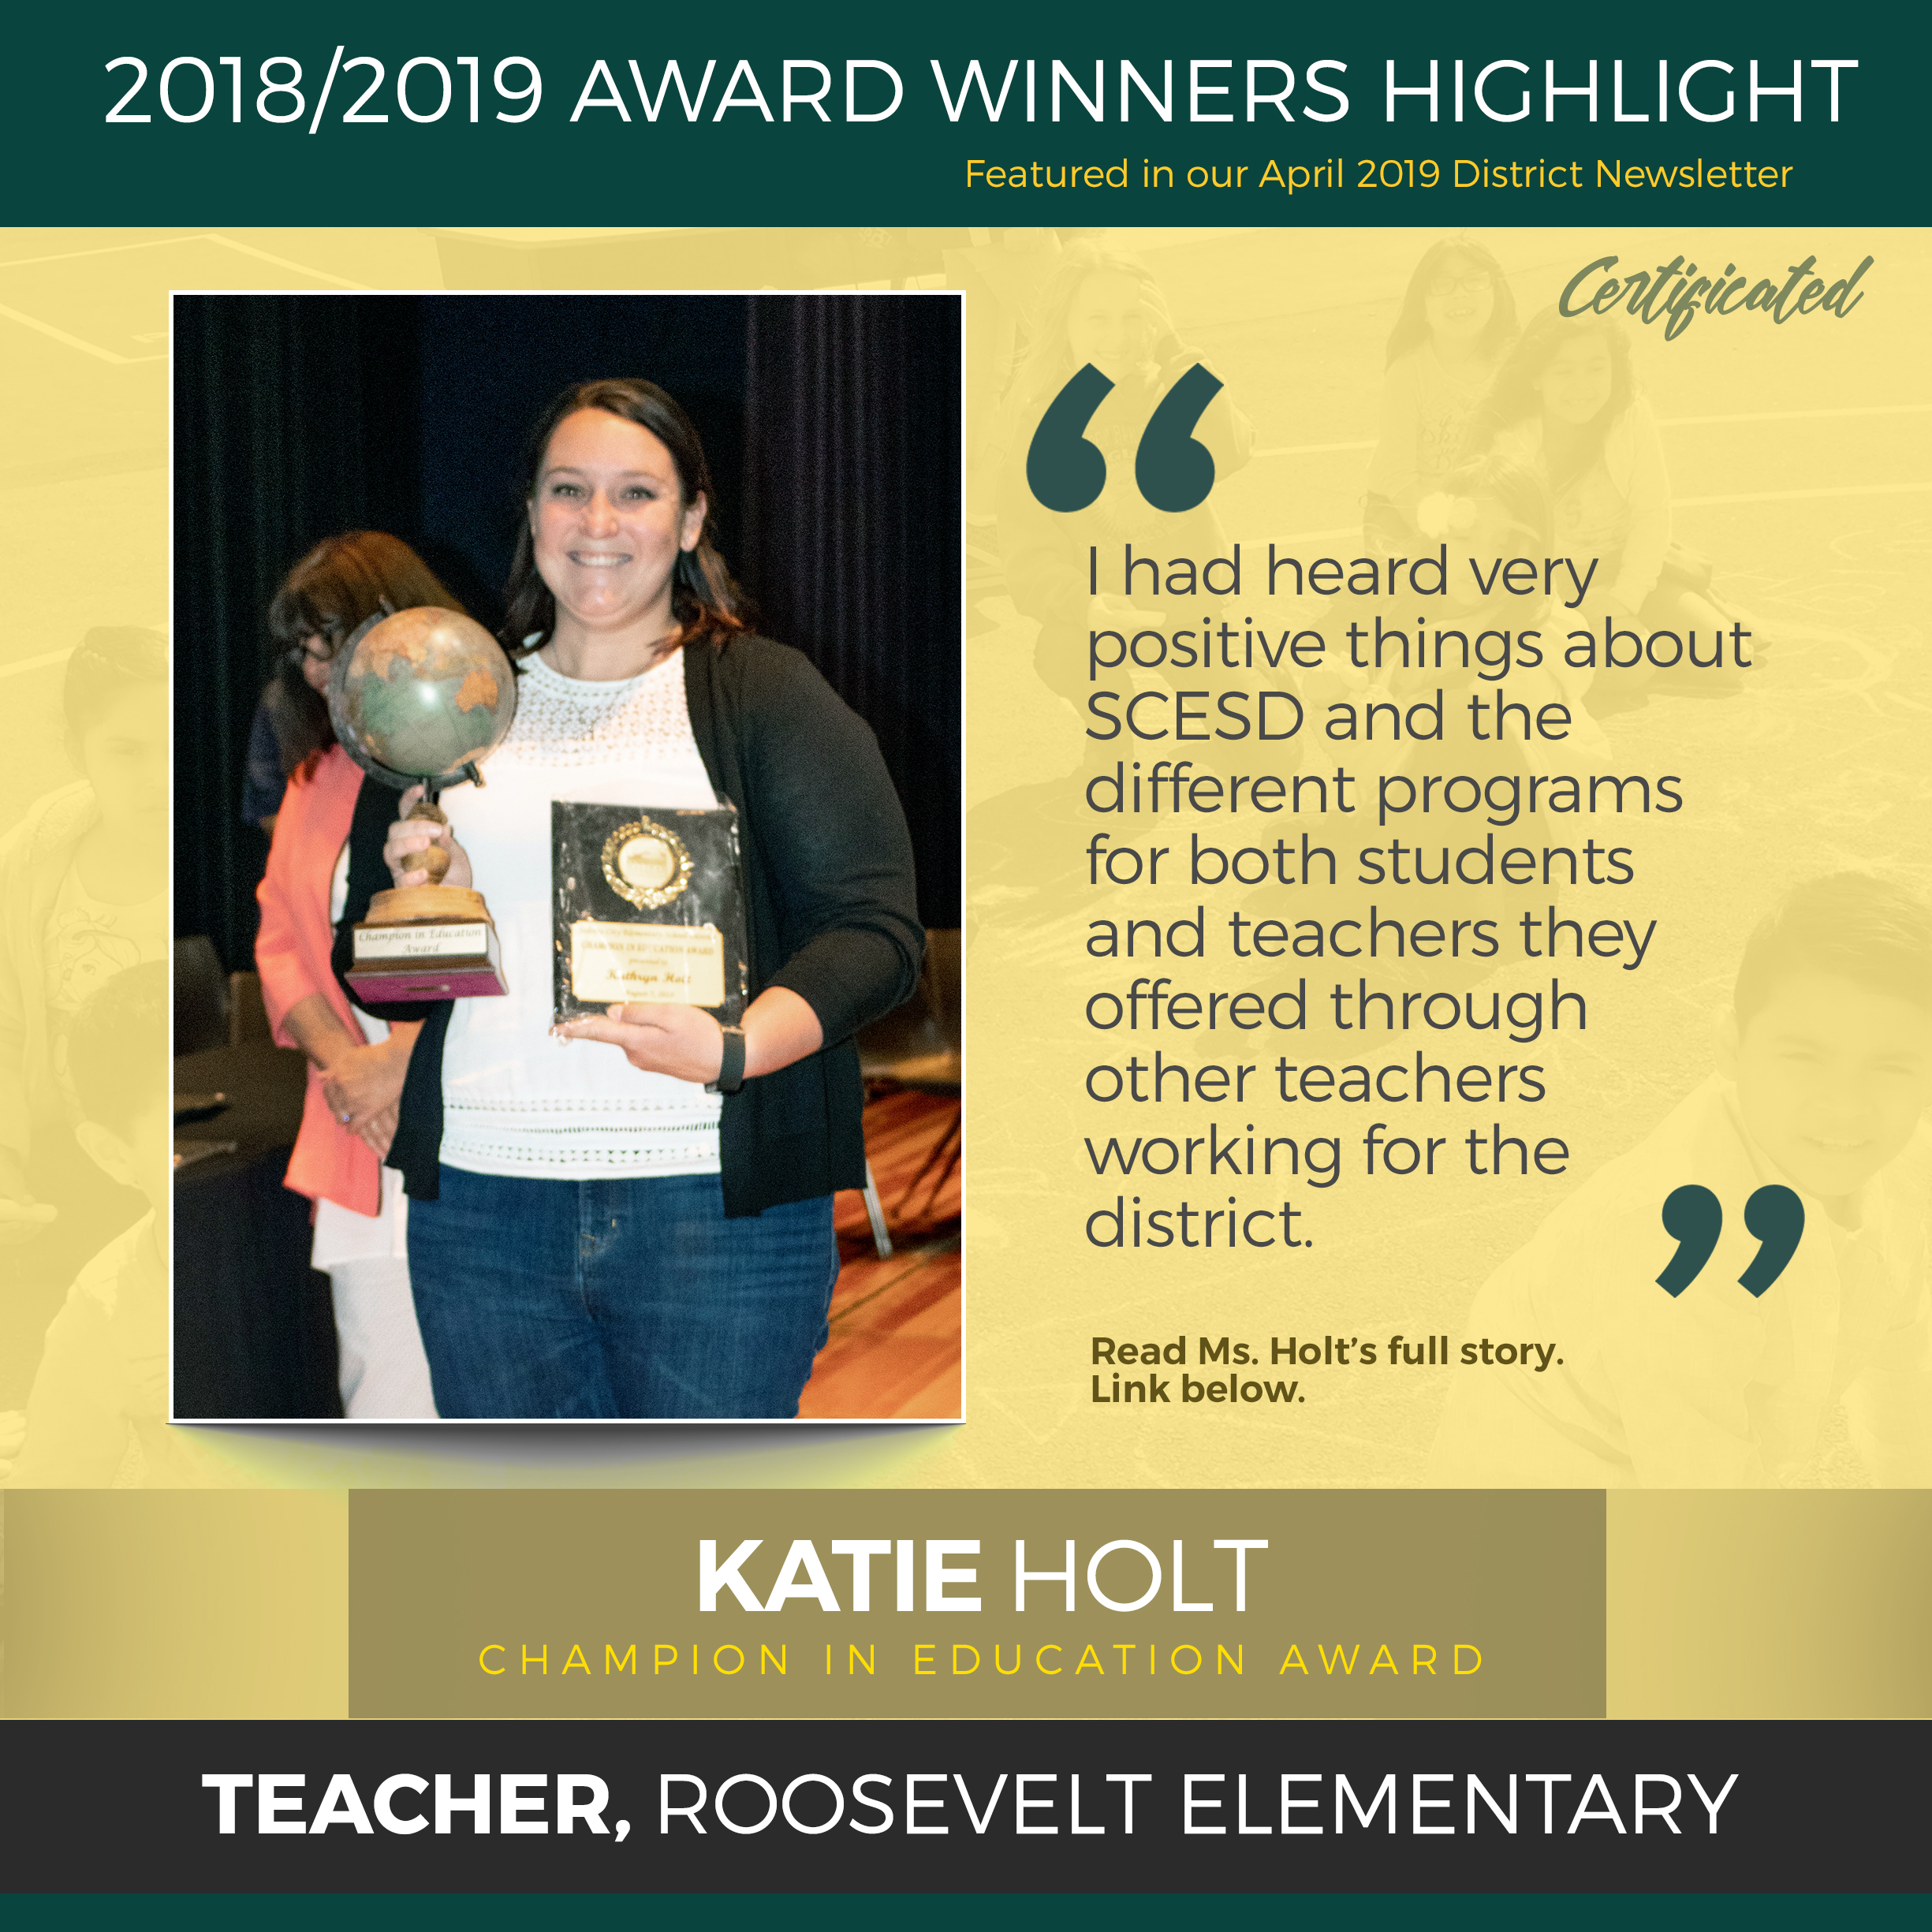 KatieHolt_GI_GOLD_Award Winner Hightlight_Social Ad.jpg